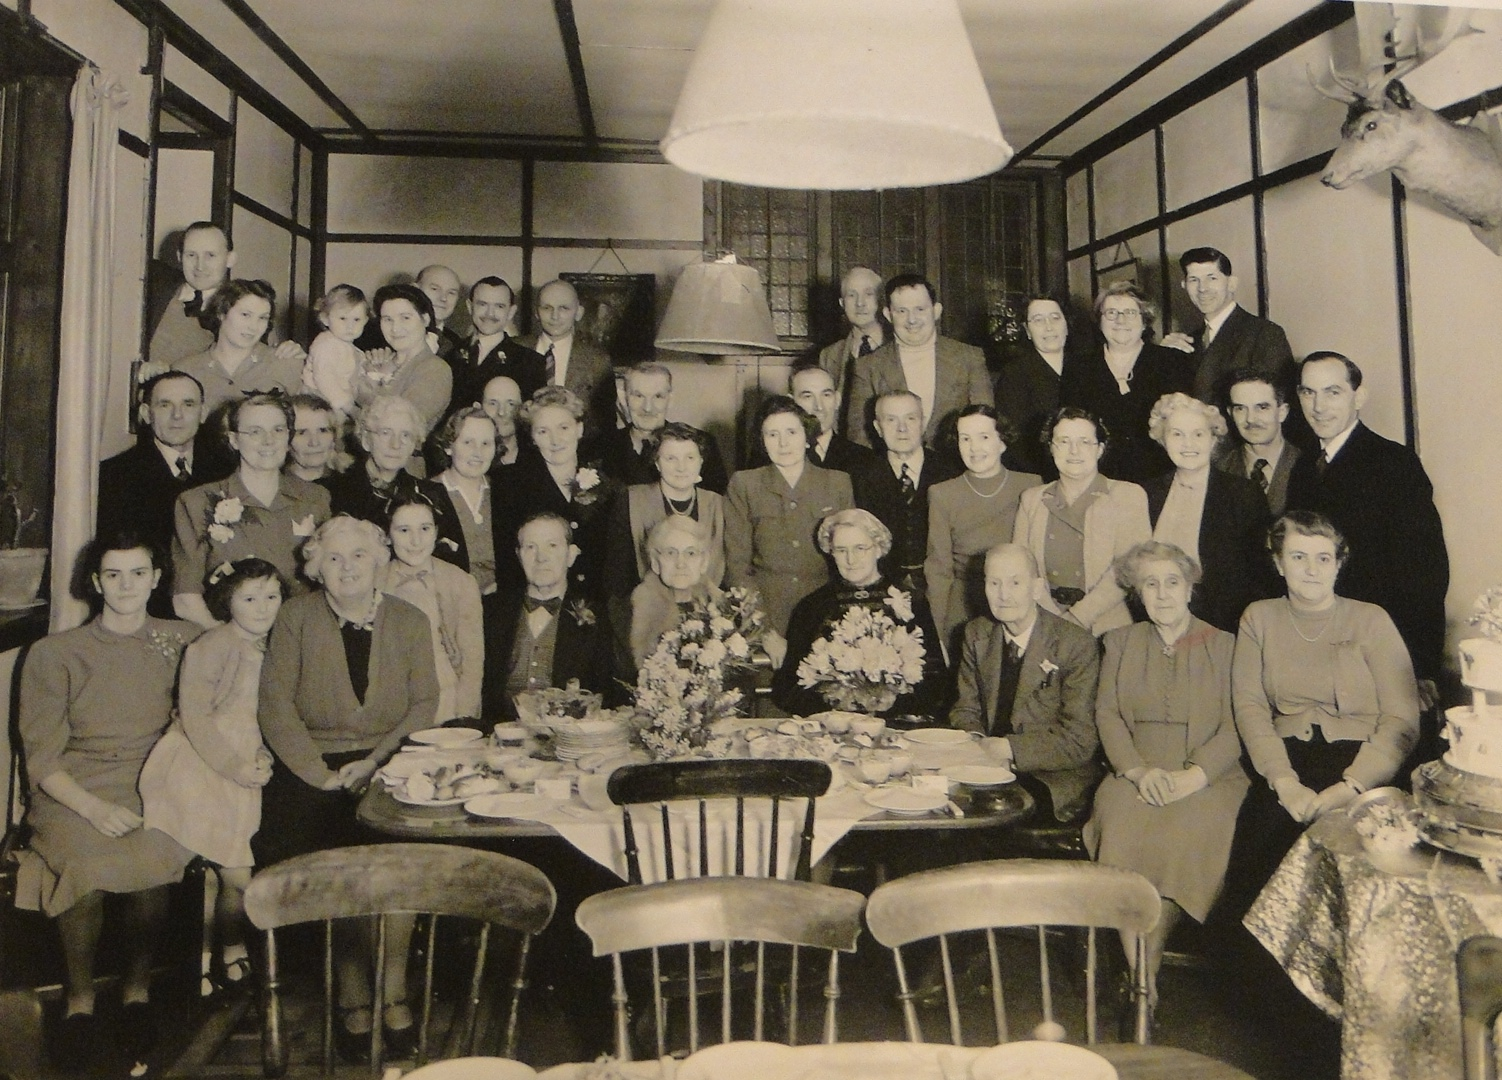 Some Knole staff and their families at a wedding anniversary party in the Buck's Head, Godden Green, in the 1940s